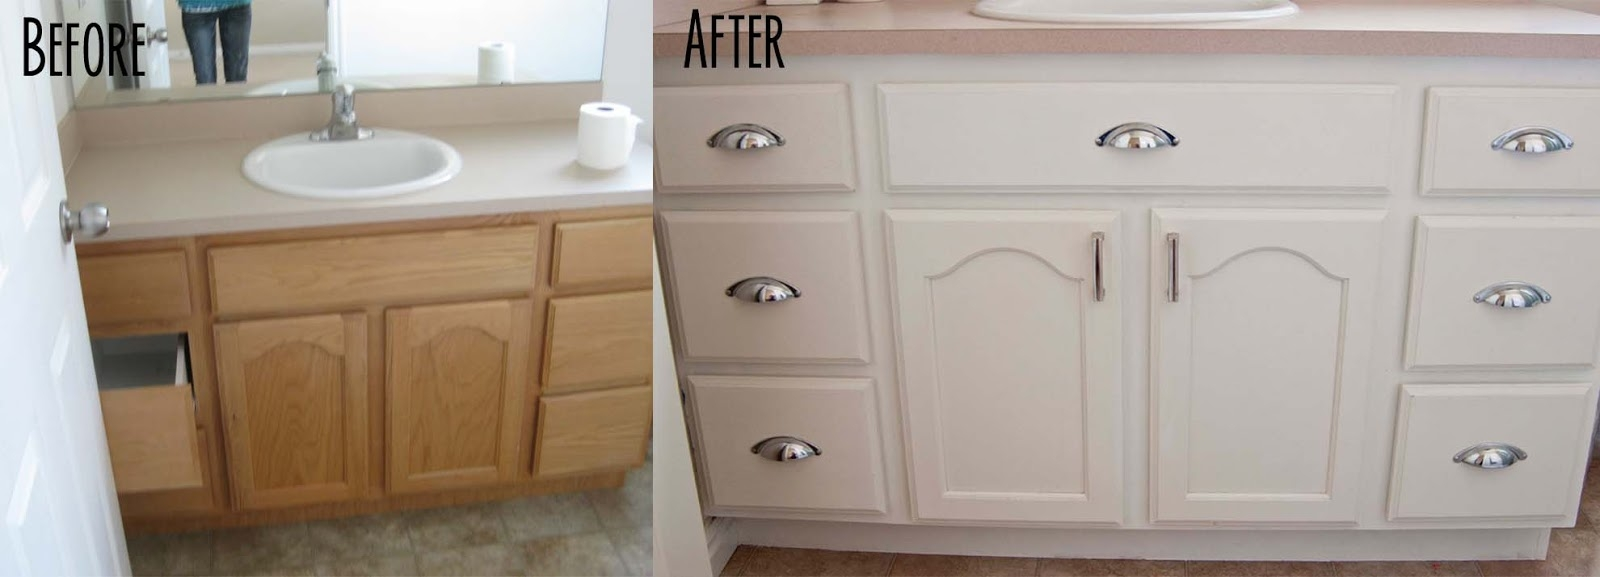 Diy Painting Bathroom Cabinets White